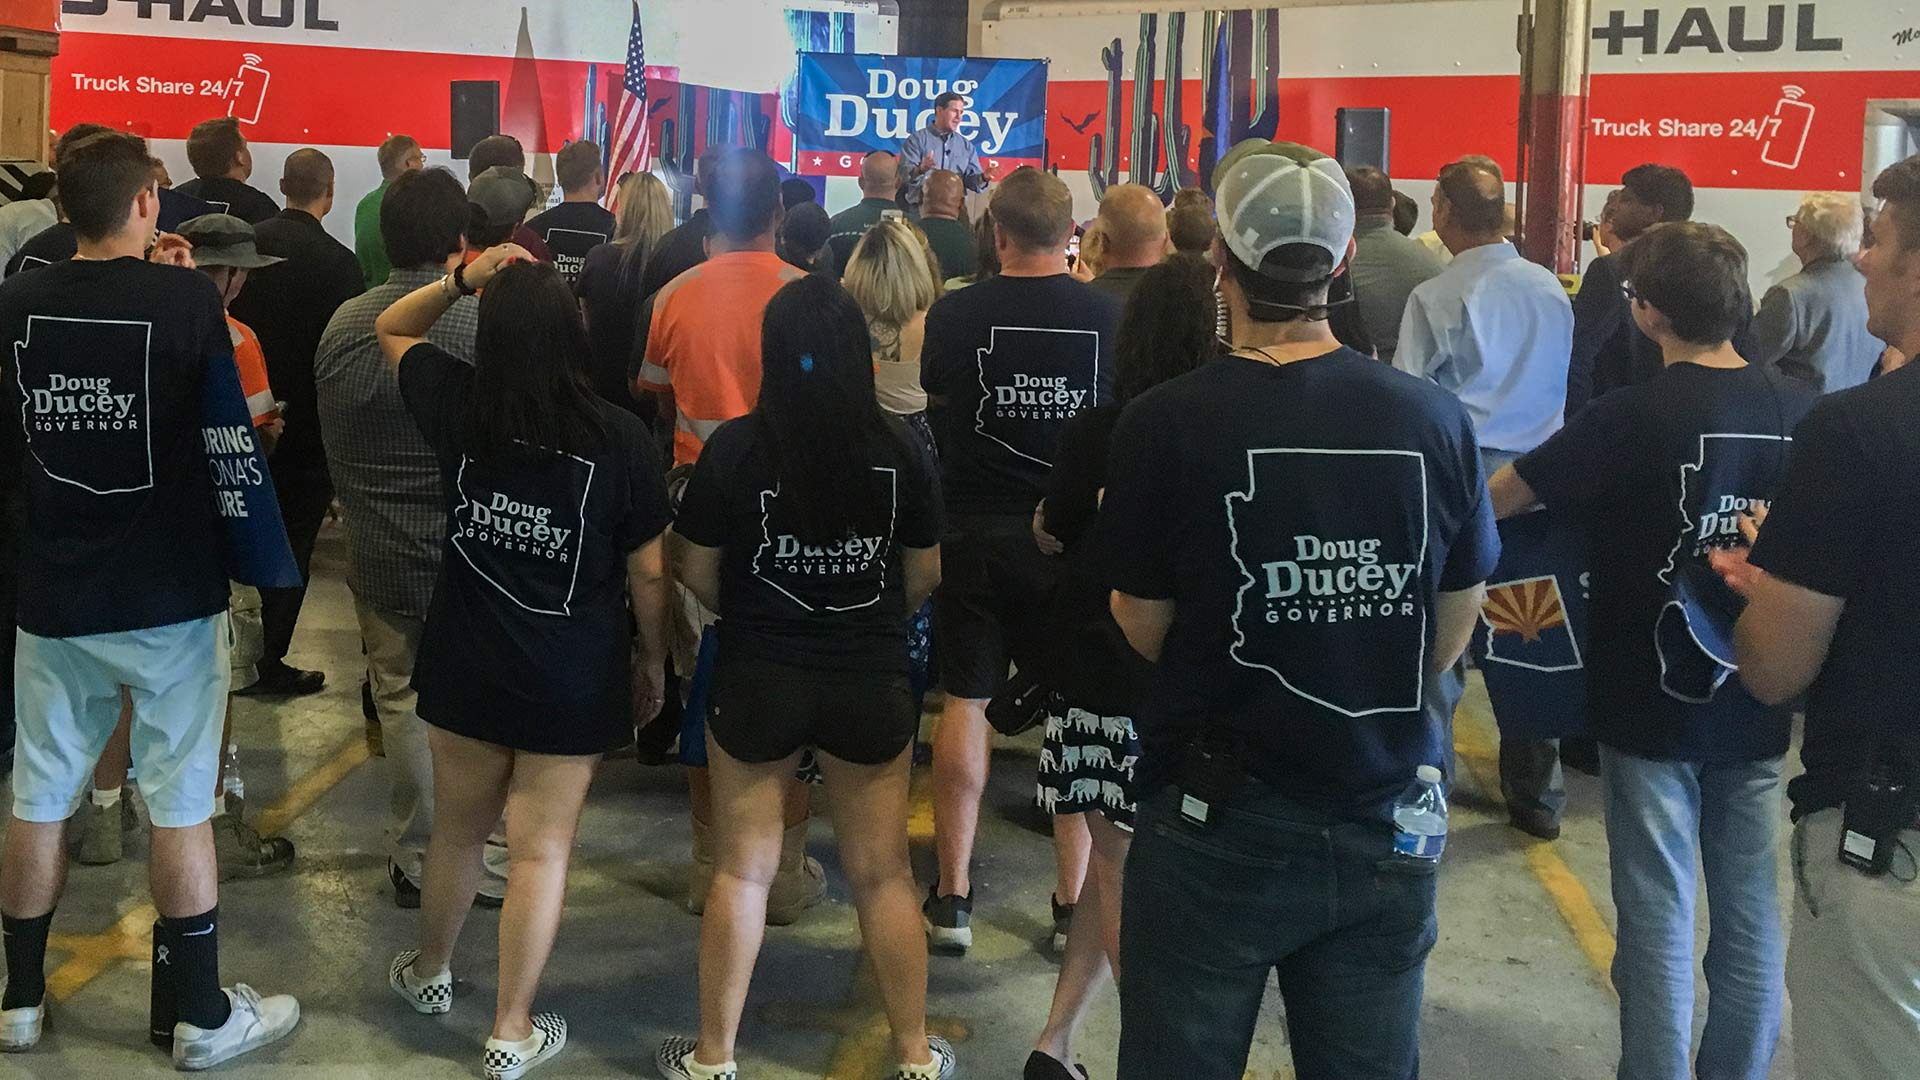 Gov. Doug Ducey at a campaign event at a U-Haul facility in Tucson,  June 20, 2018.